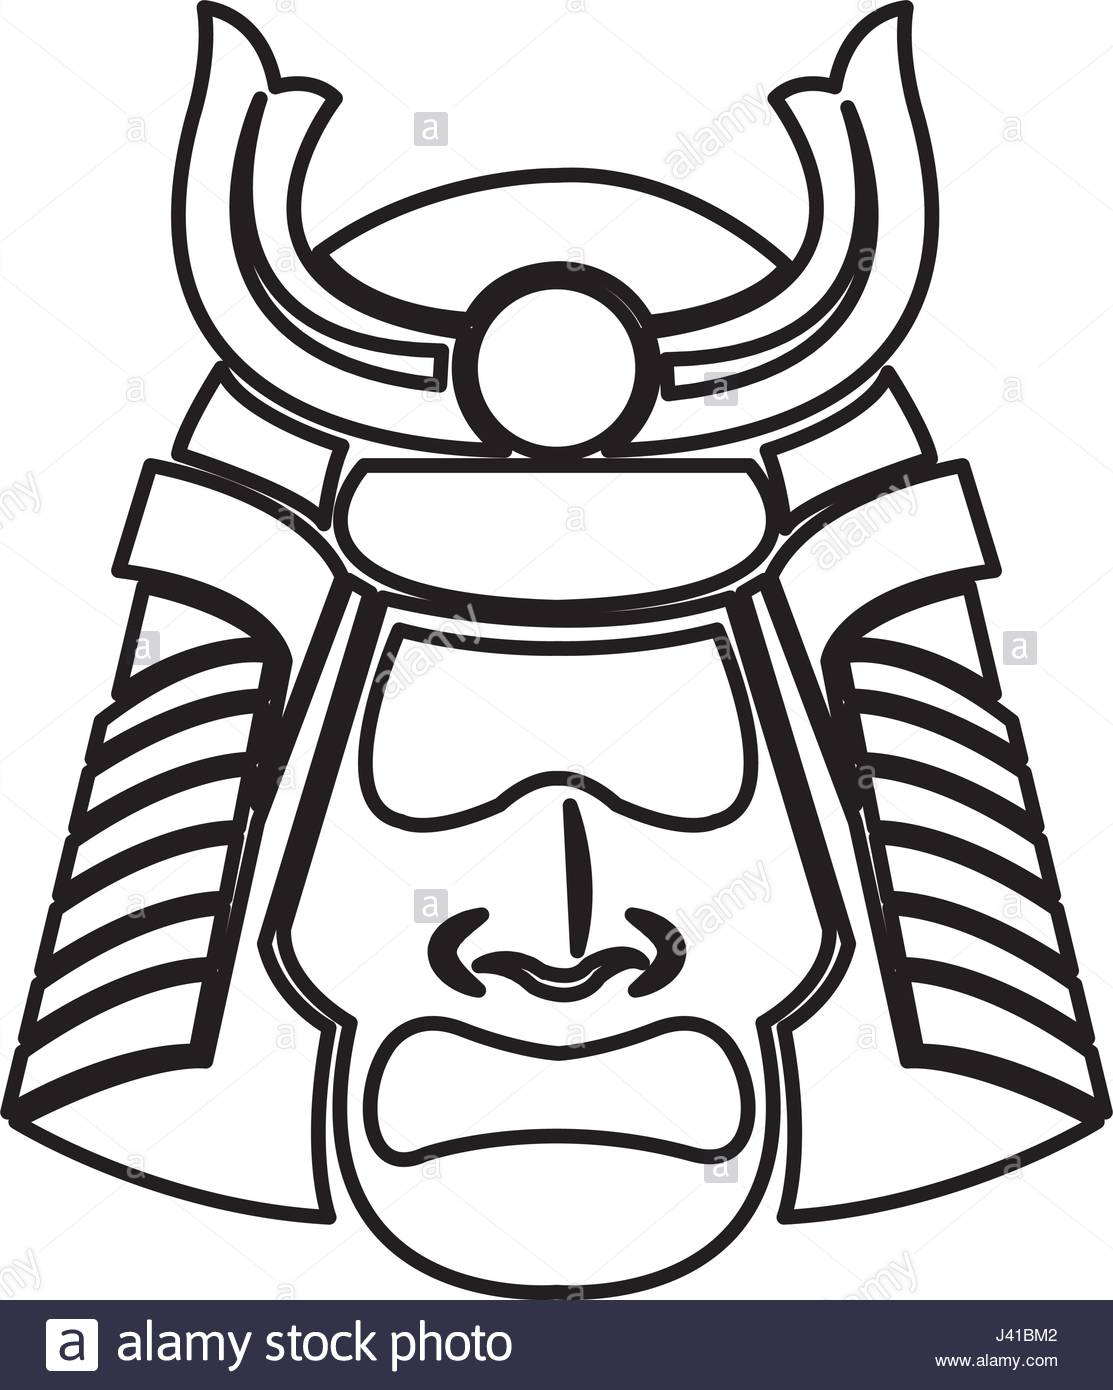 35 Best Sheep Mask Template. Beautiful S For Sheep Coloring Page ...